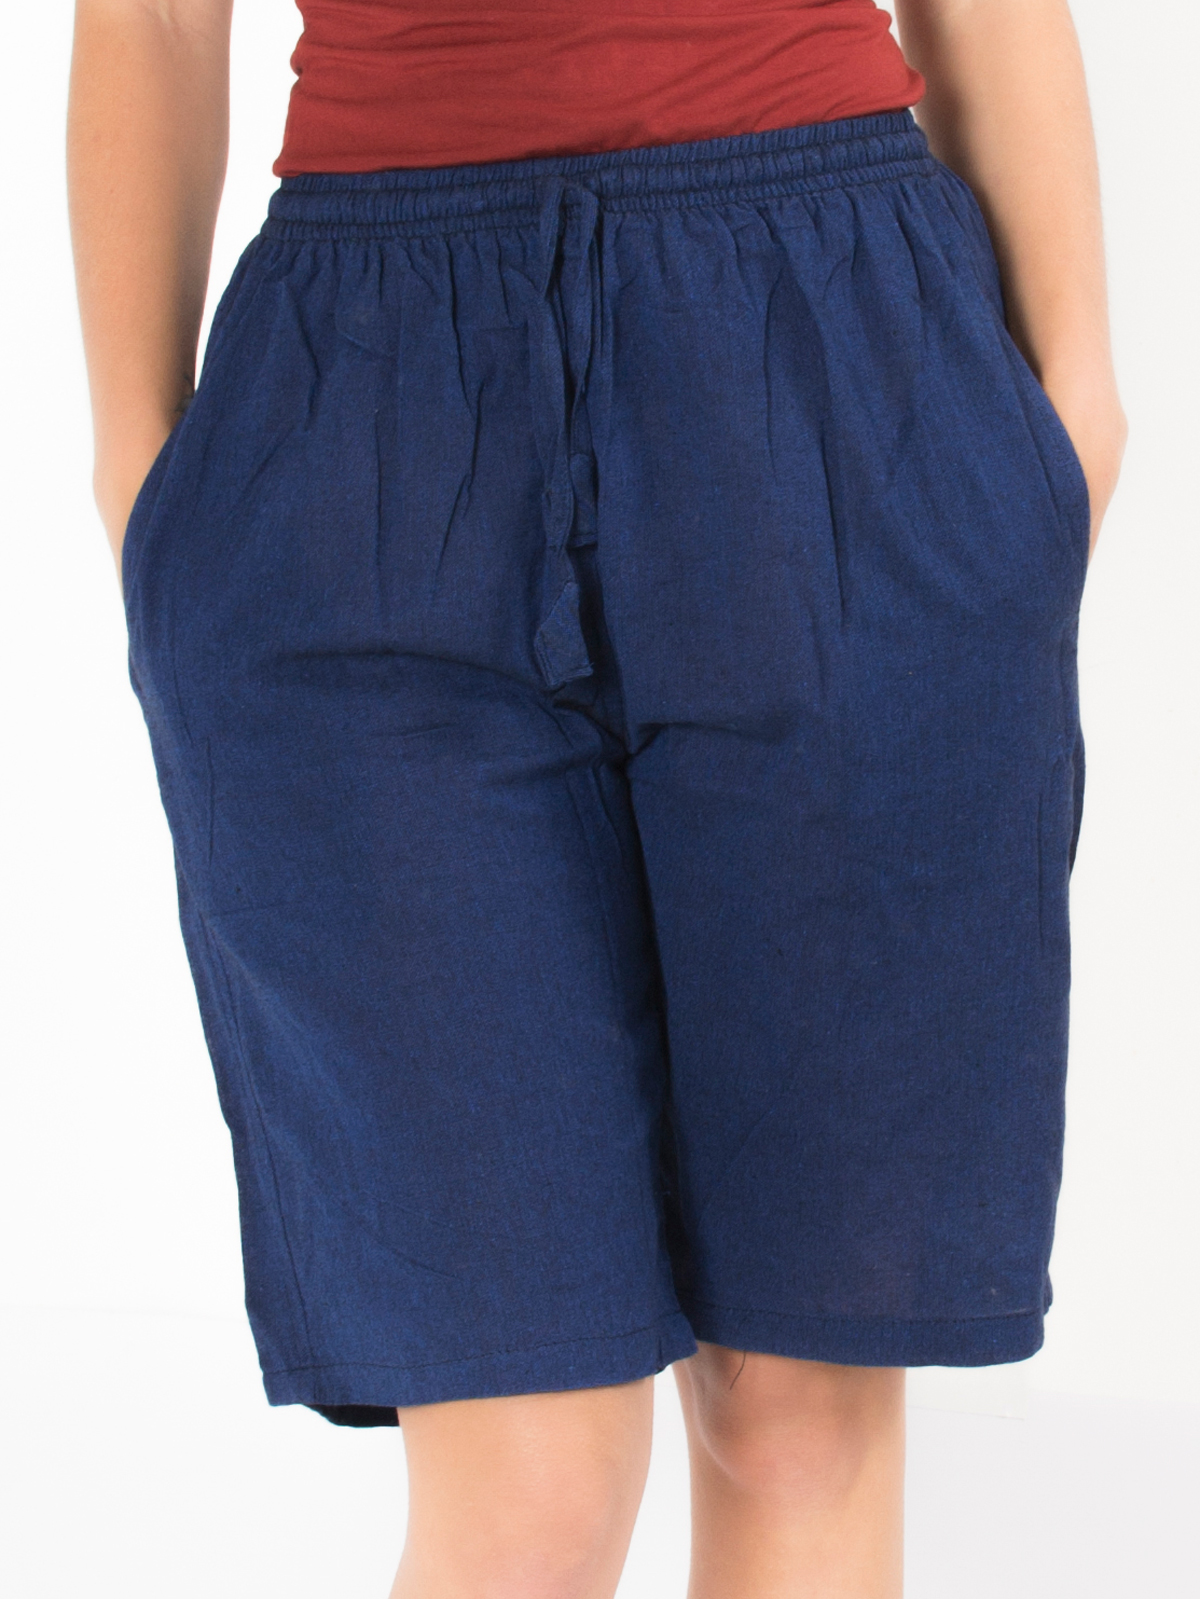 Short ethnique bleu marine uni simple